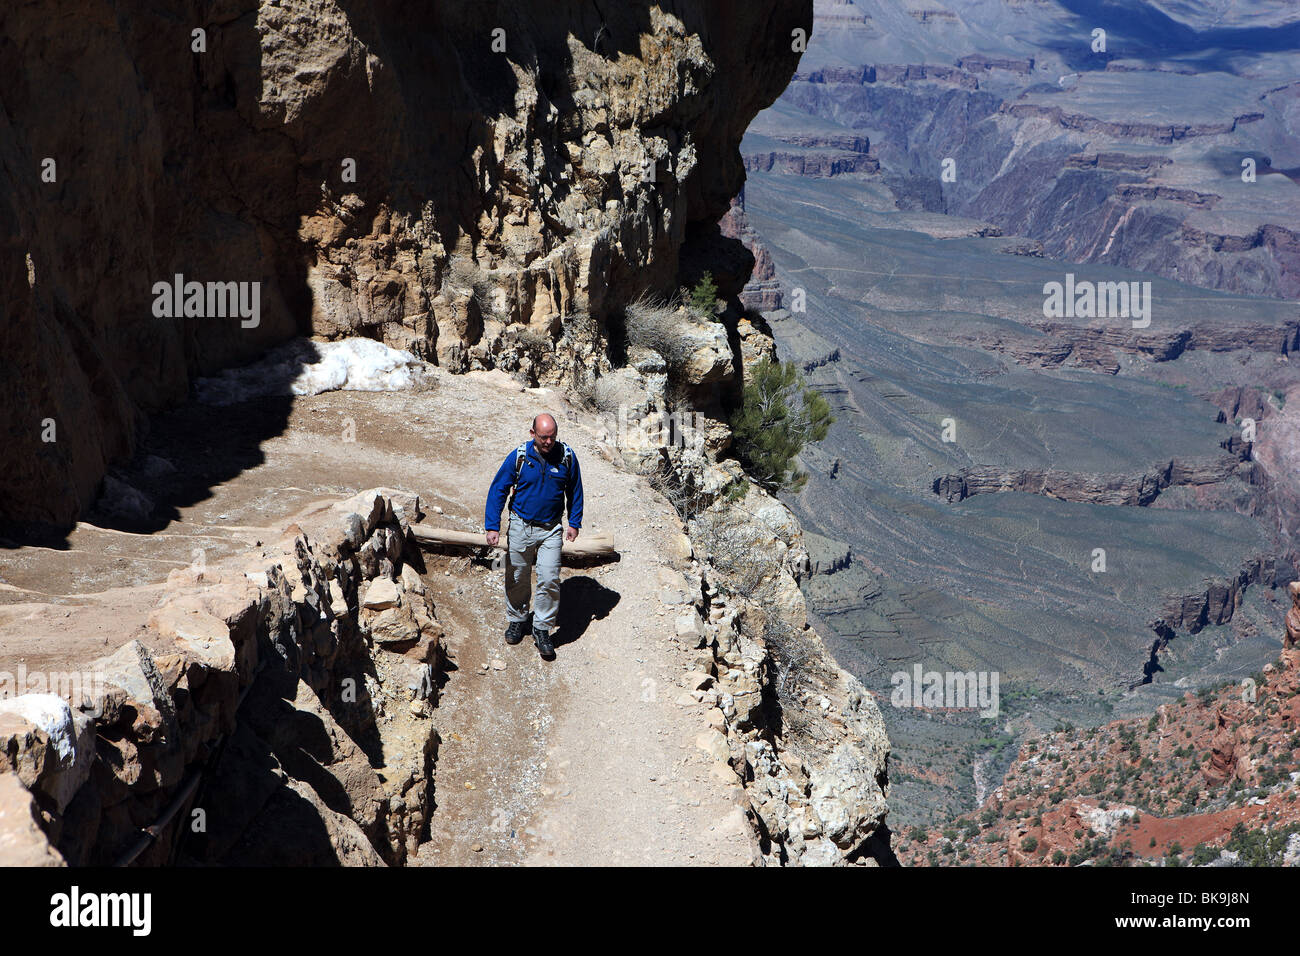 Walker on the South Kaibab Trail in the Grand Canyon - Stock Image